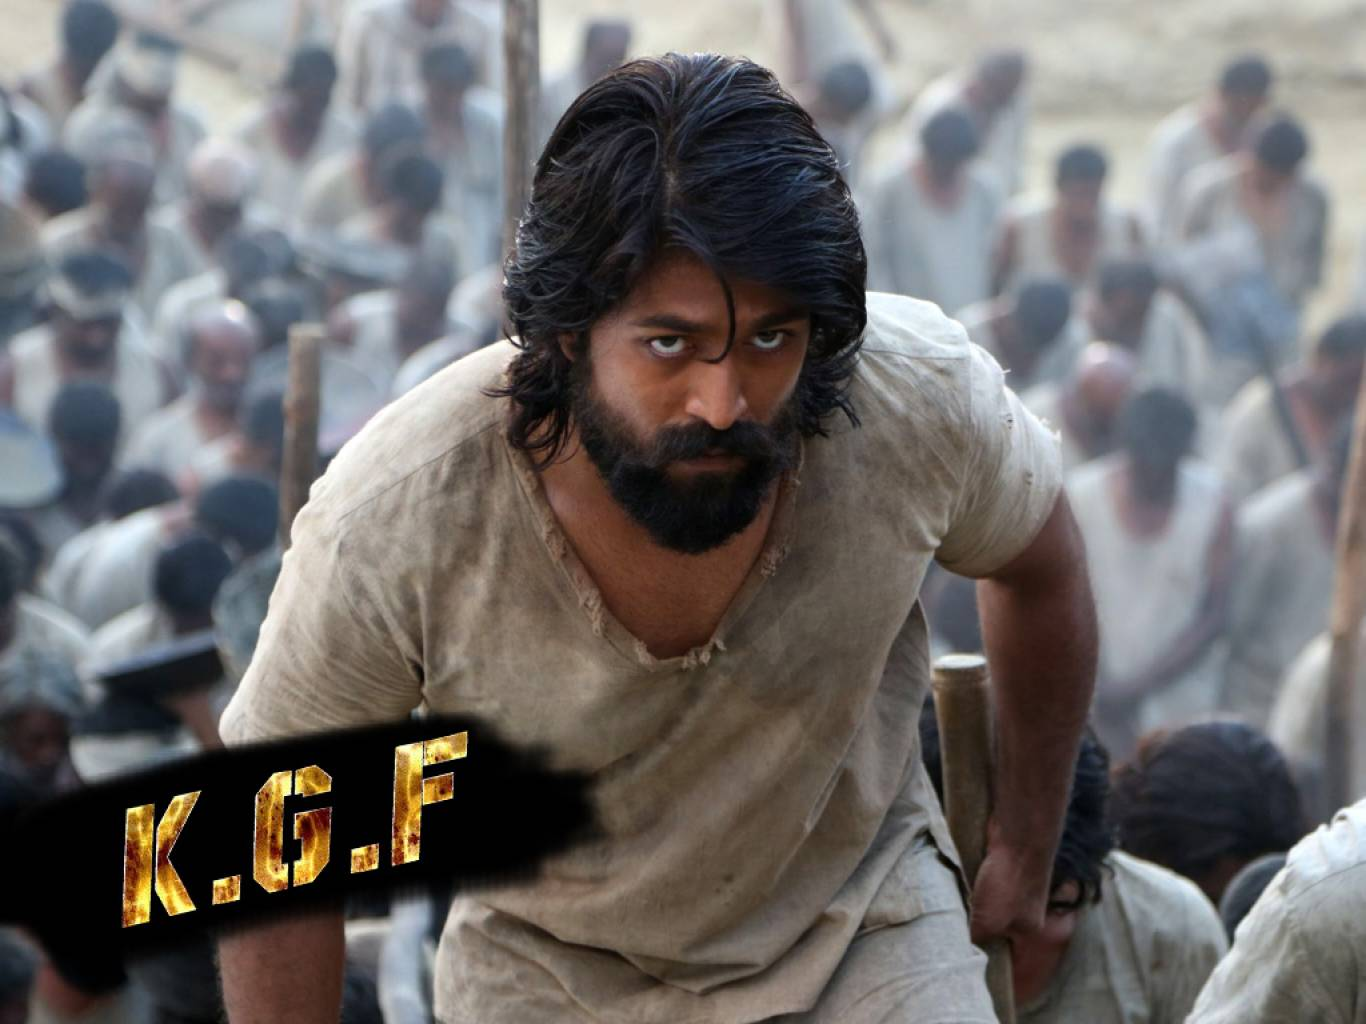 Kgf Movie Hd Wallpapers Kgf Hd Movie Wallpapers Free Download 1080p To 2k Filmibeat